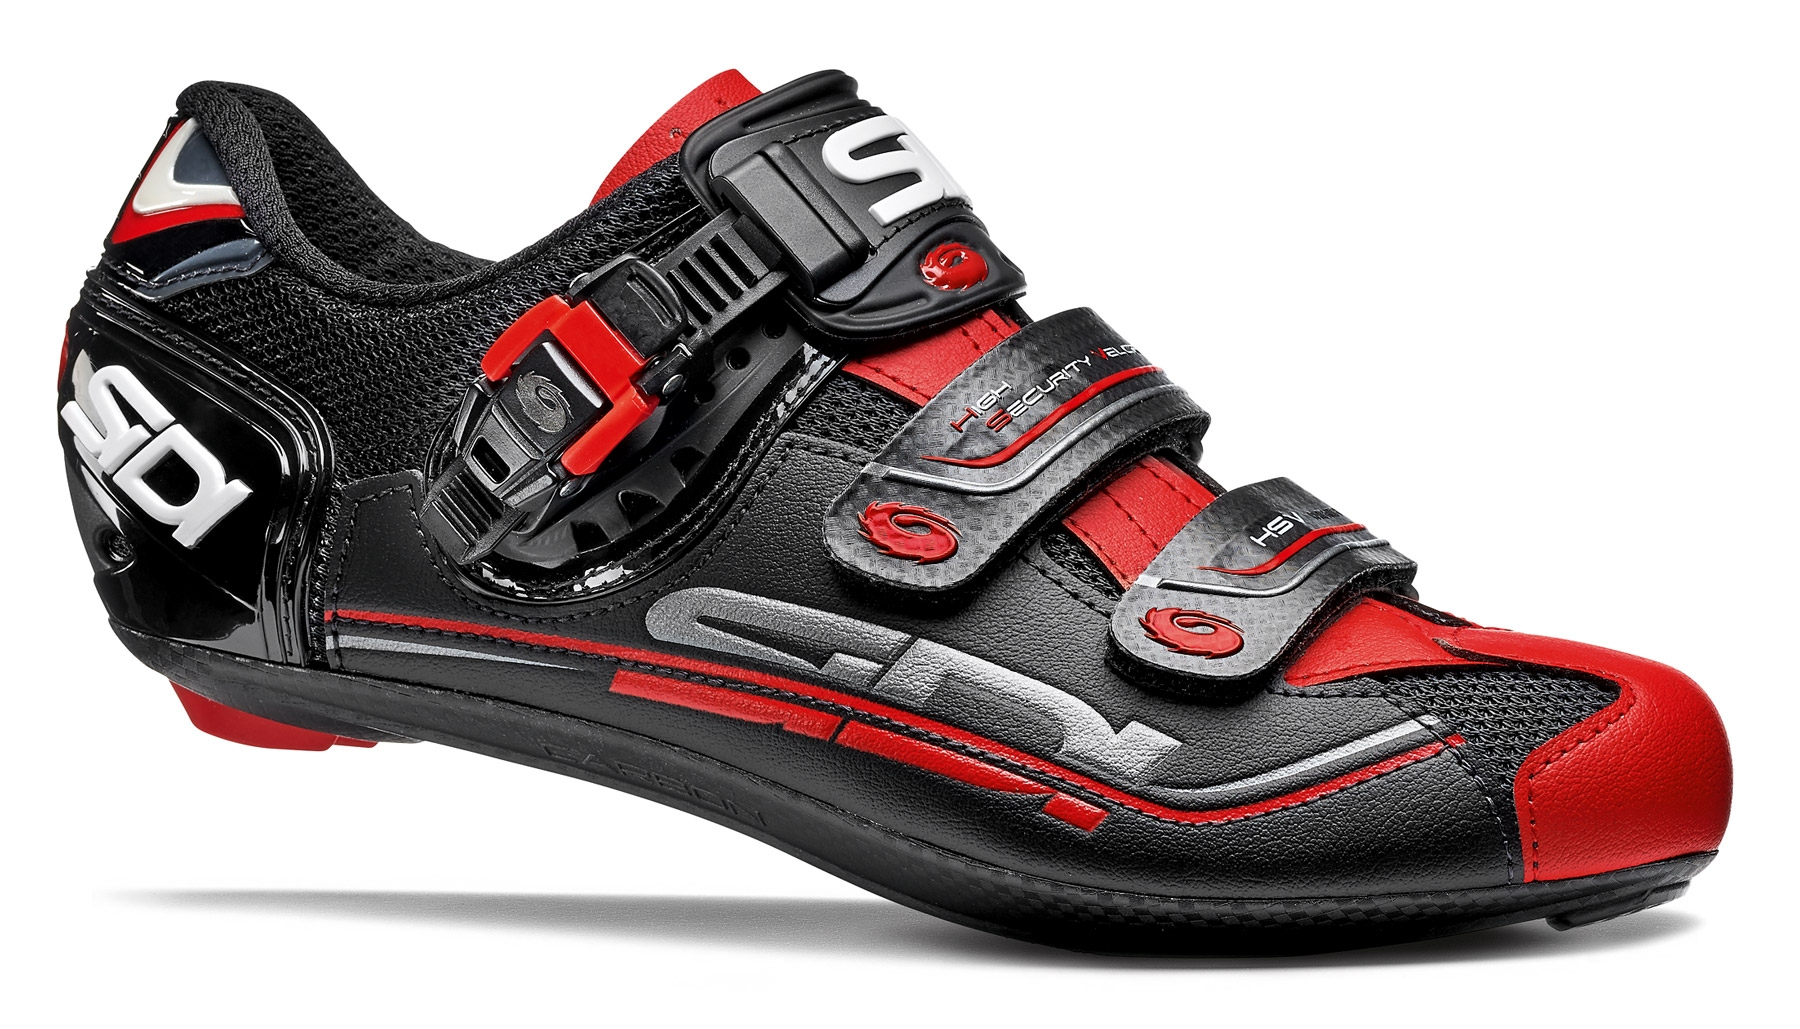 Shoes 7 Shoe Cycling Sidi Triathlon Genius Bike f4qFnPnIW